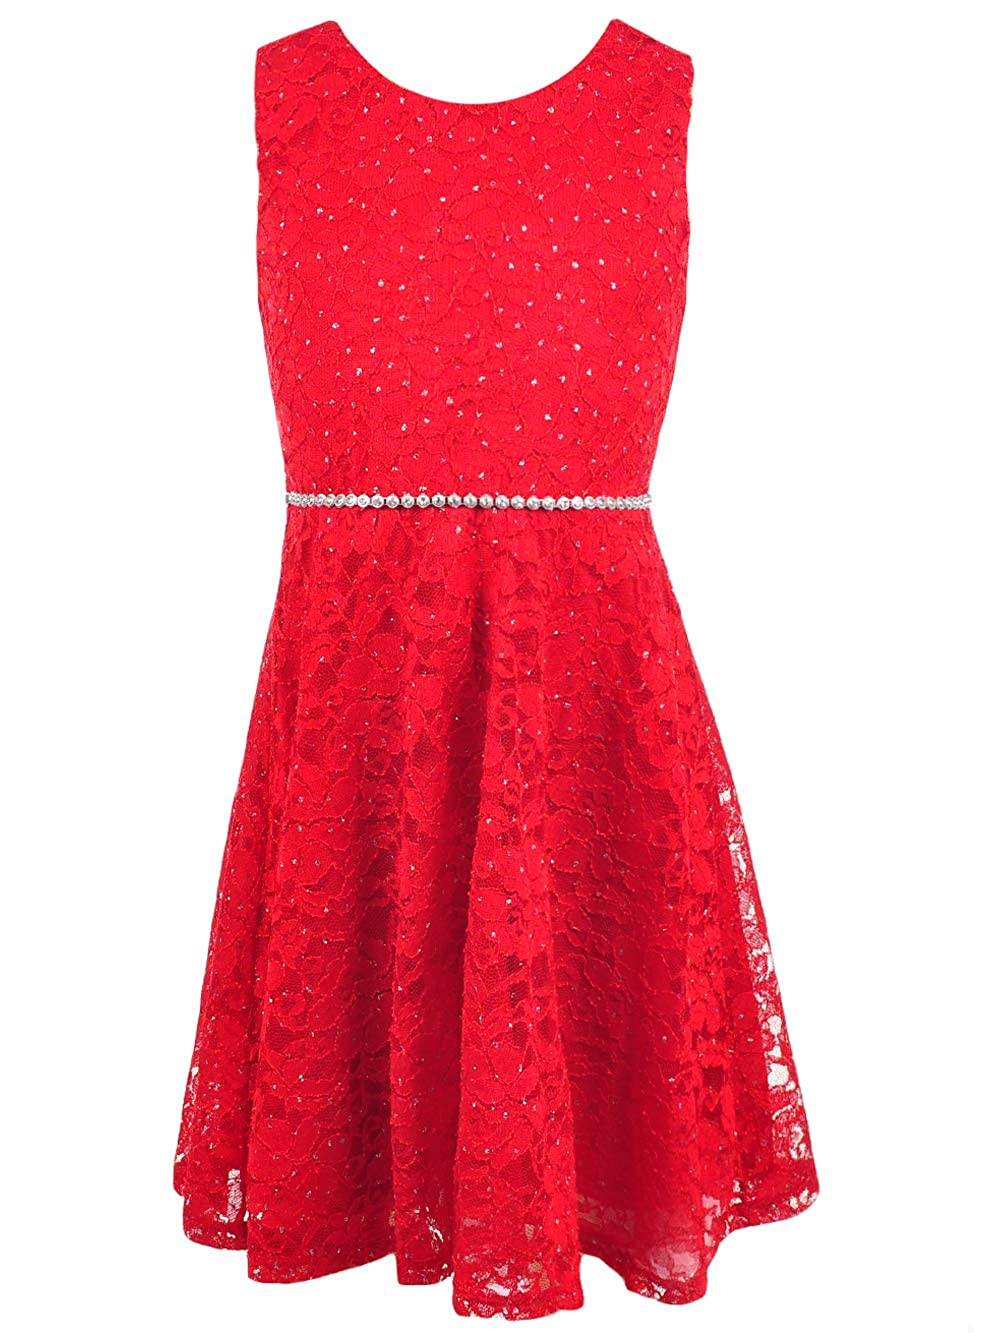 SPEECHLESS Girls' Dress SPEECHLESS Girls' Dress